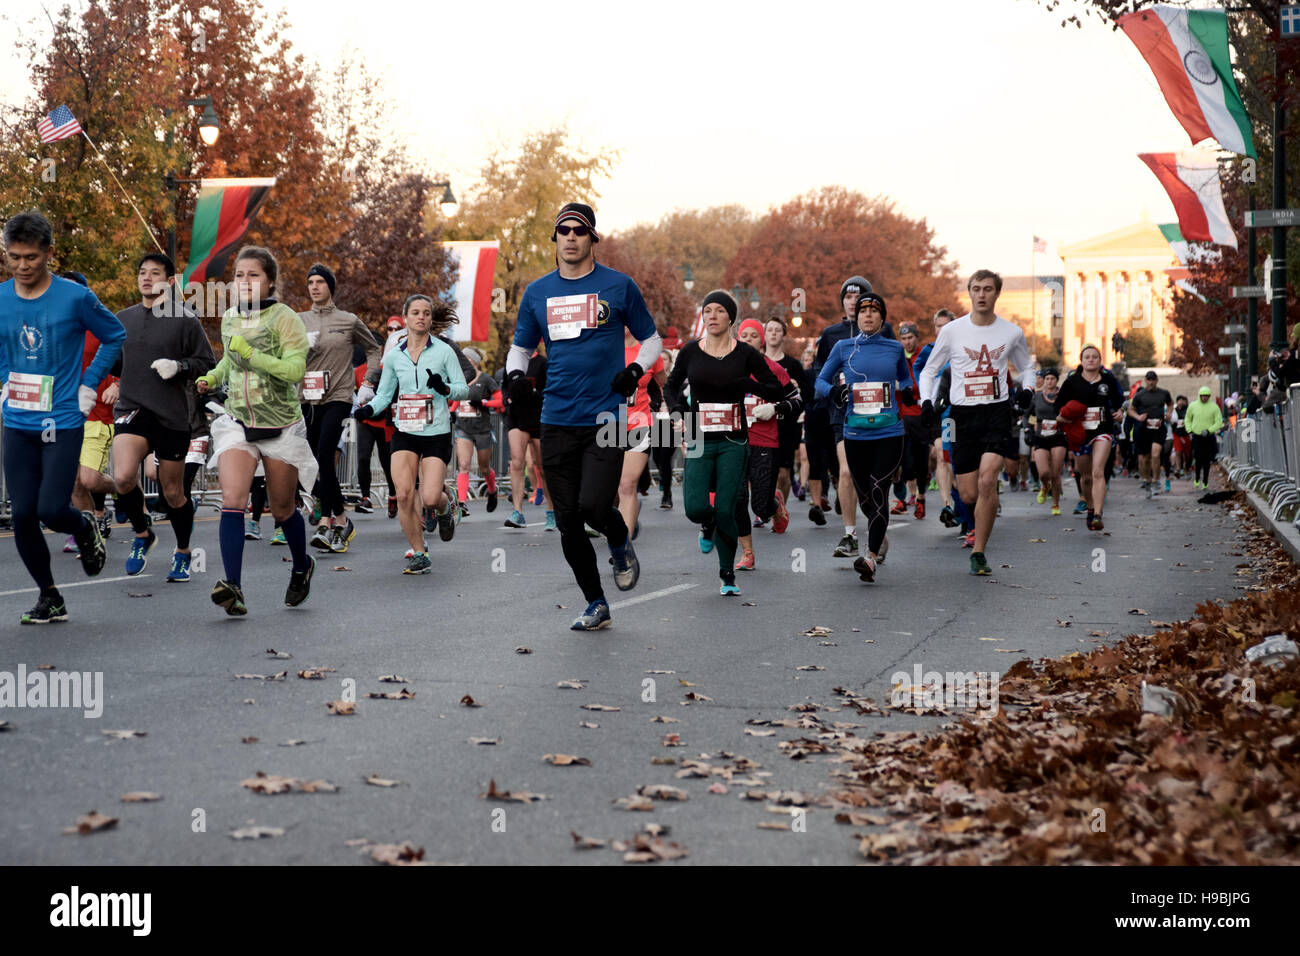 Philadelphia, Pennsylvania, USA. 20th Nov, 2016. Runners at the start line of the 2016 Philadelphia Marathon, on - Stock Image